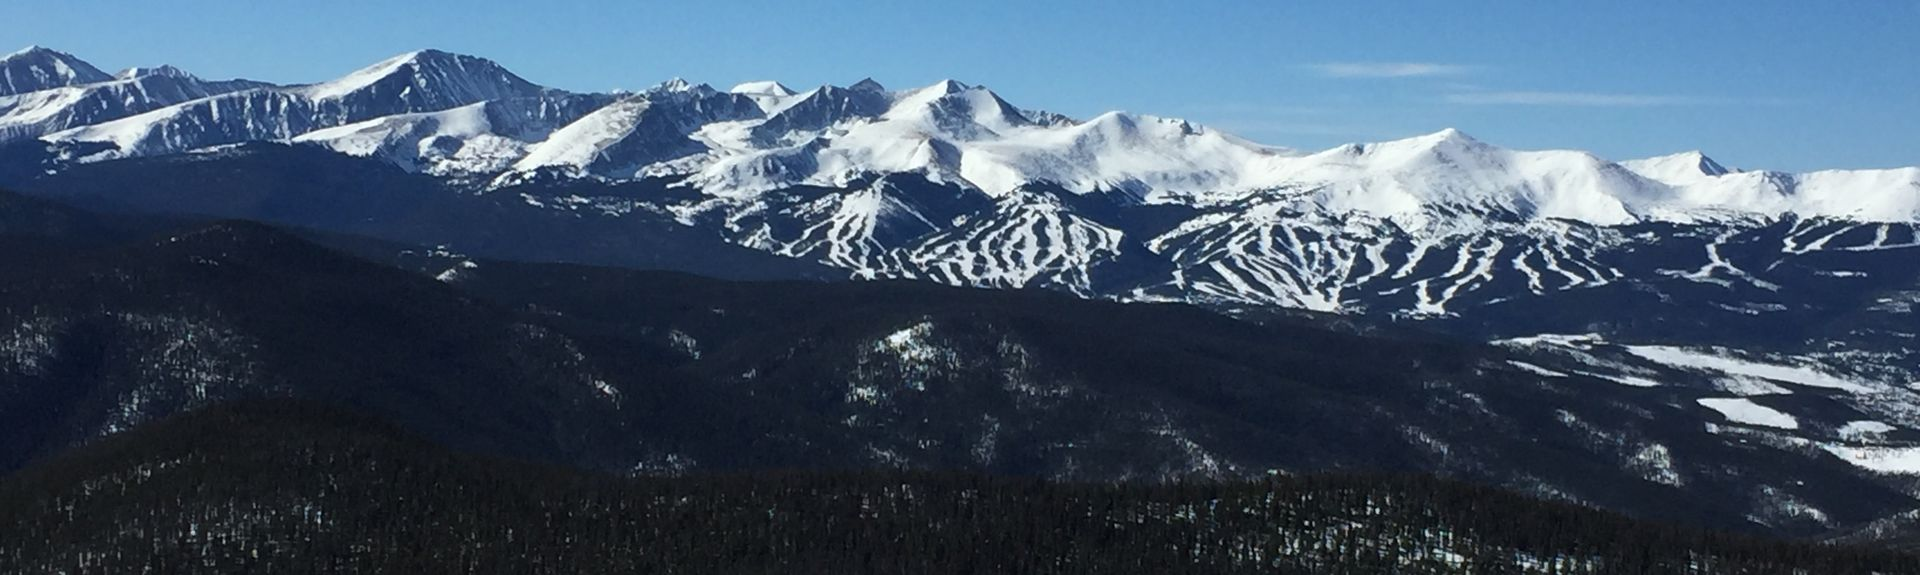 Breckenridge Peak 7, Breckenridge, CO, USA